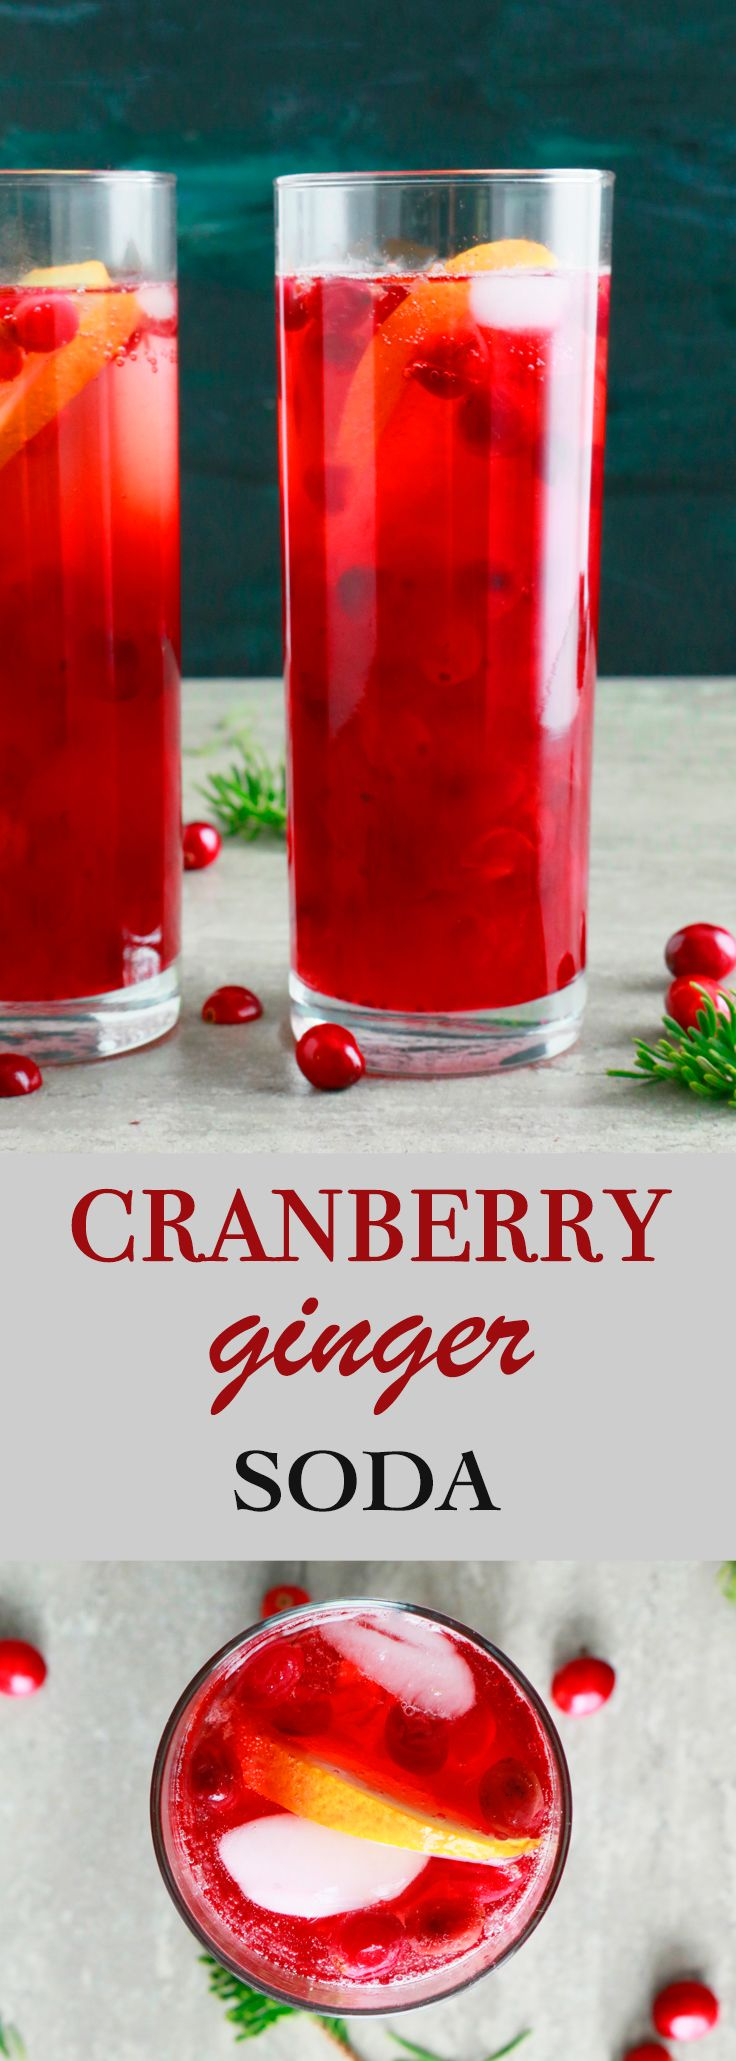 holiday drinks | christmas drink recipes | kid friendly drinks | cranberry drink recipes | non alcoholic drinks | soda recipes | pretty drinks | party drinks